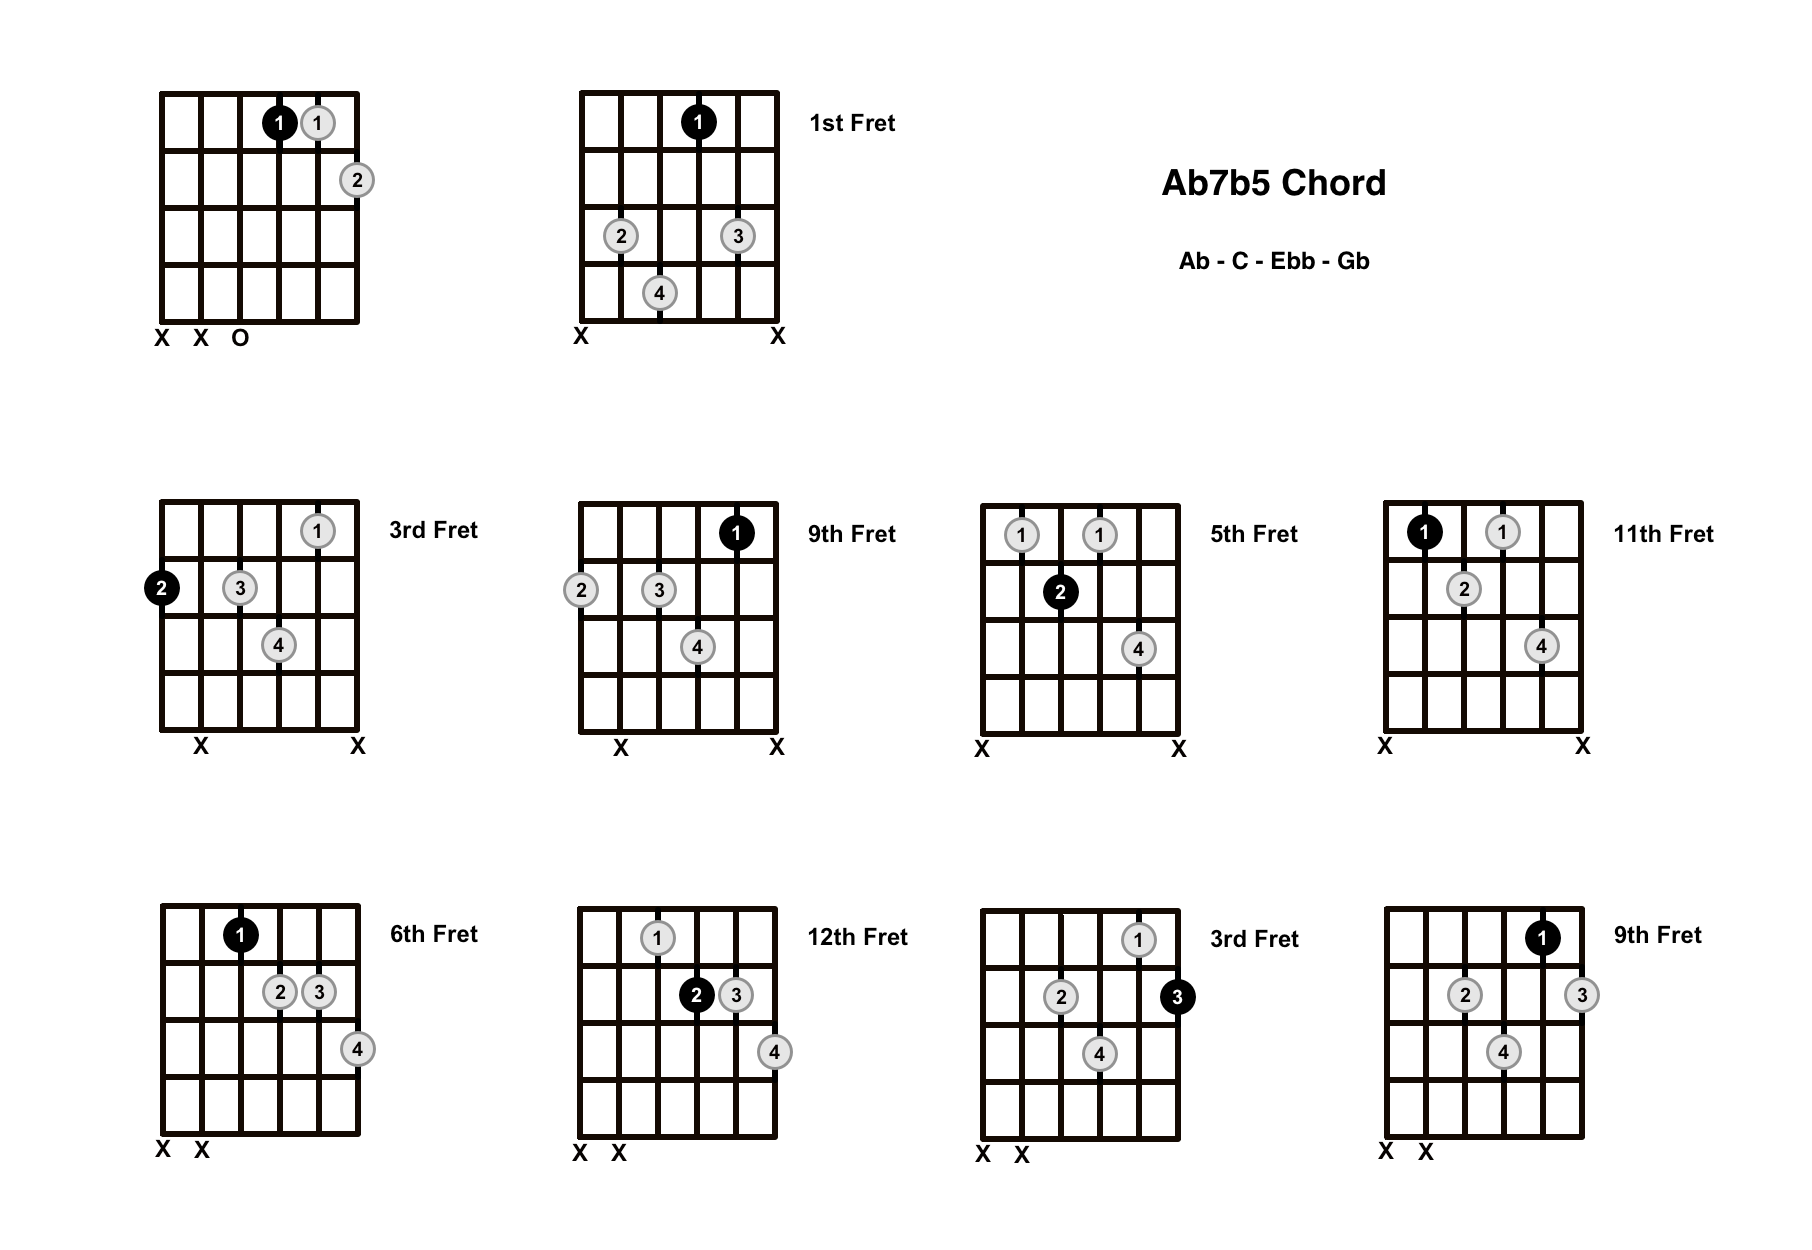 Ab7b5 Chord On The Guitar (A Flat Dominant 7 Flat 5) – Diagrams, Finger Positions and Theory